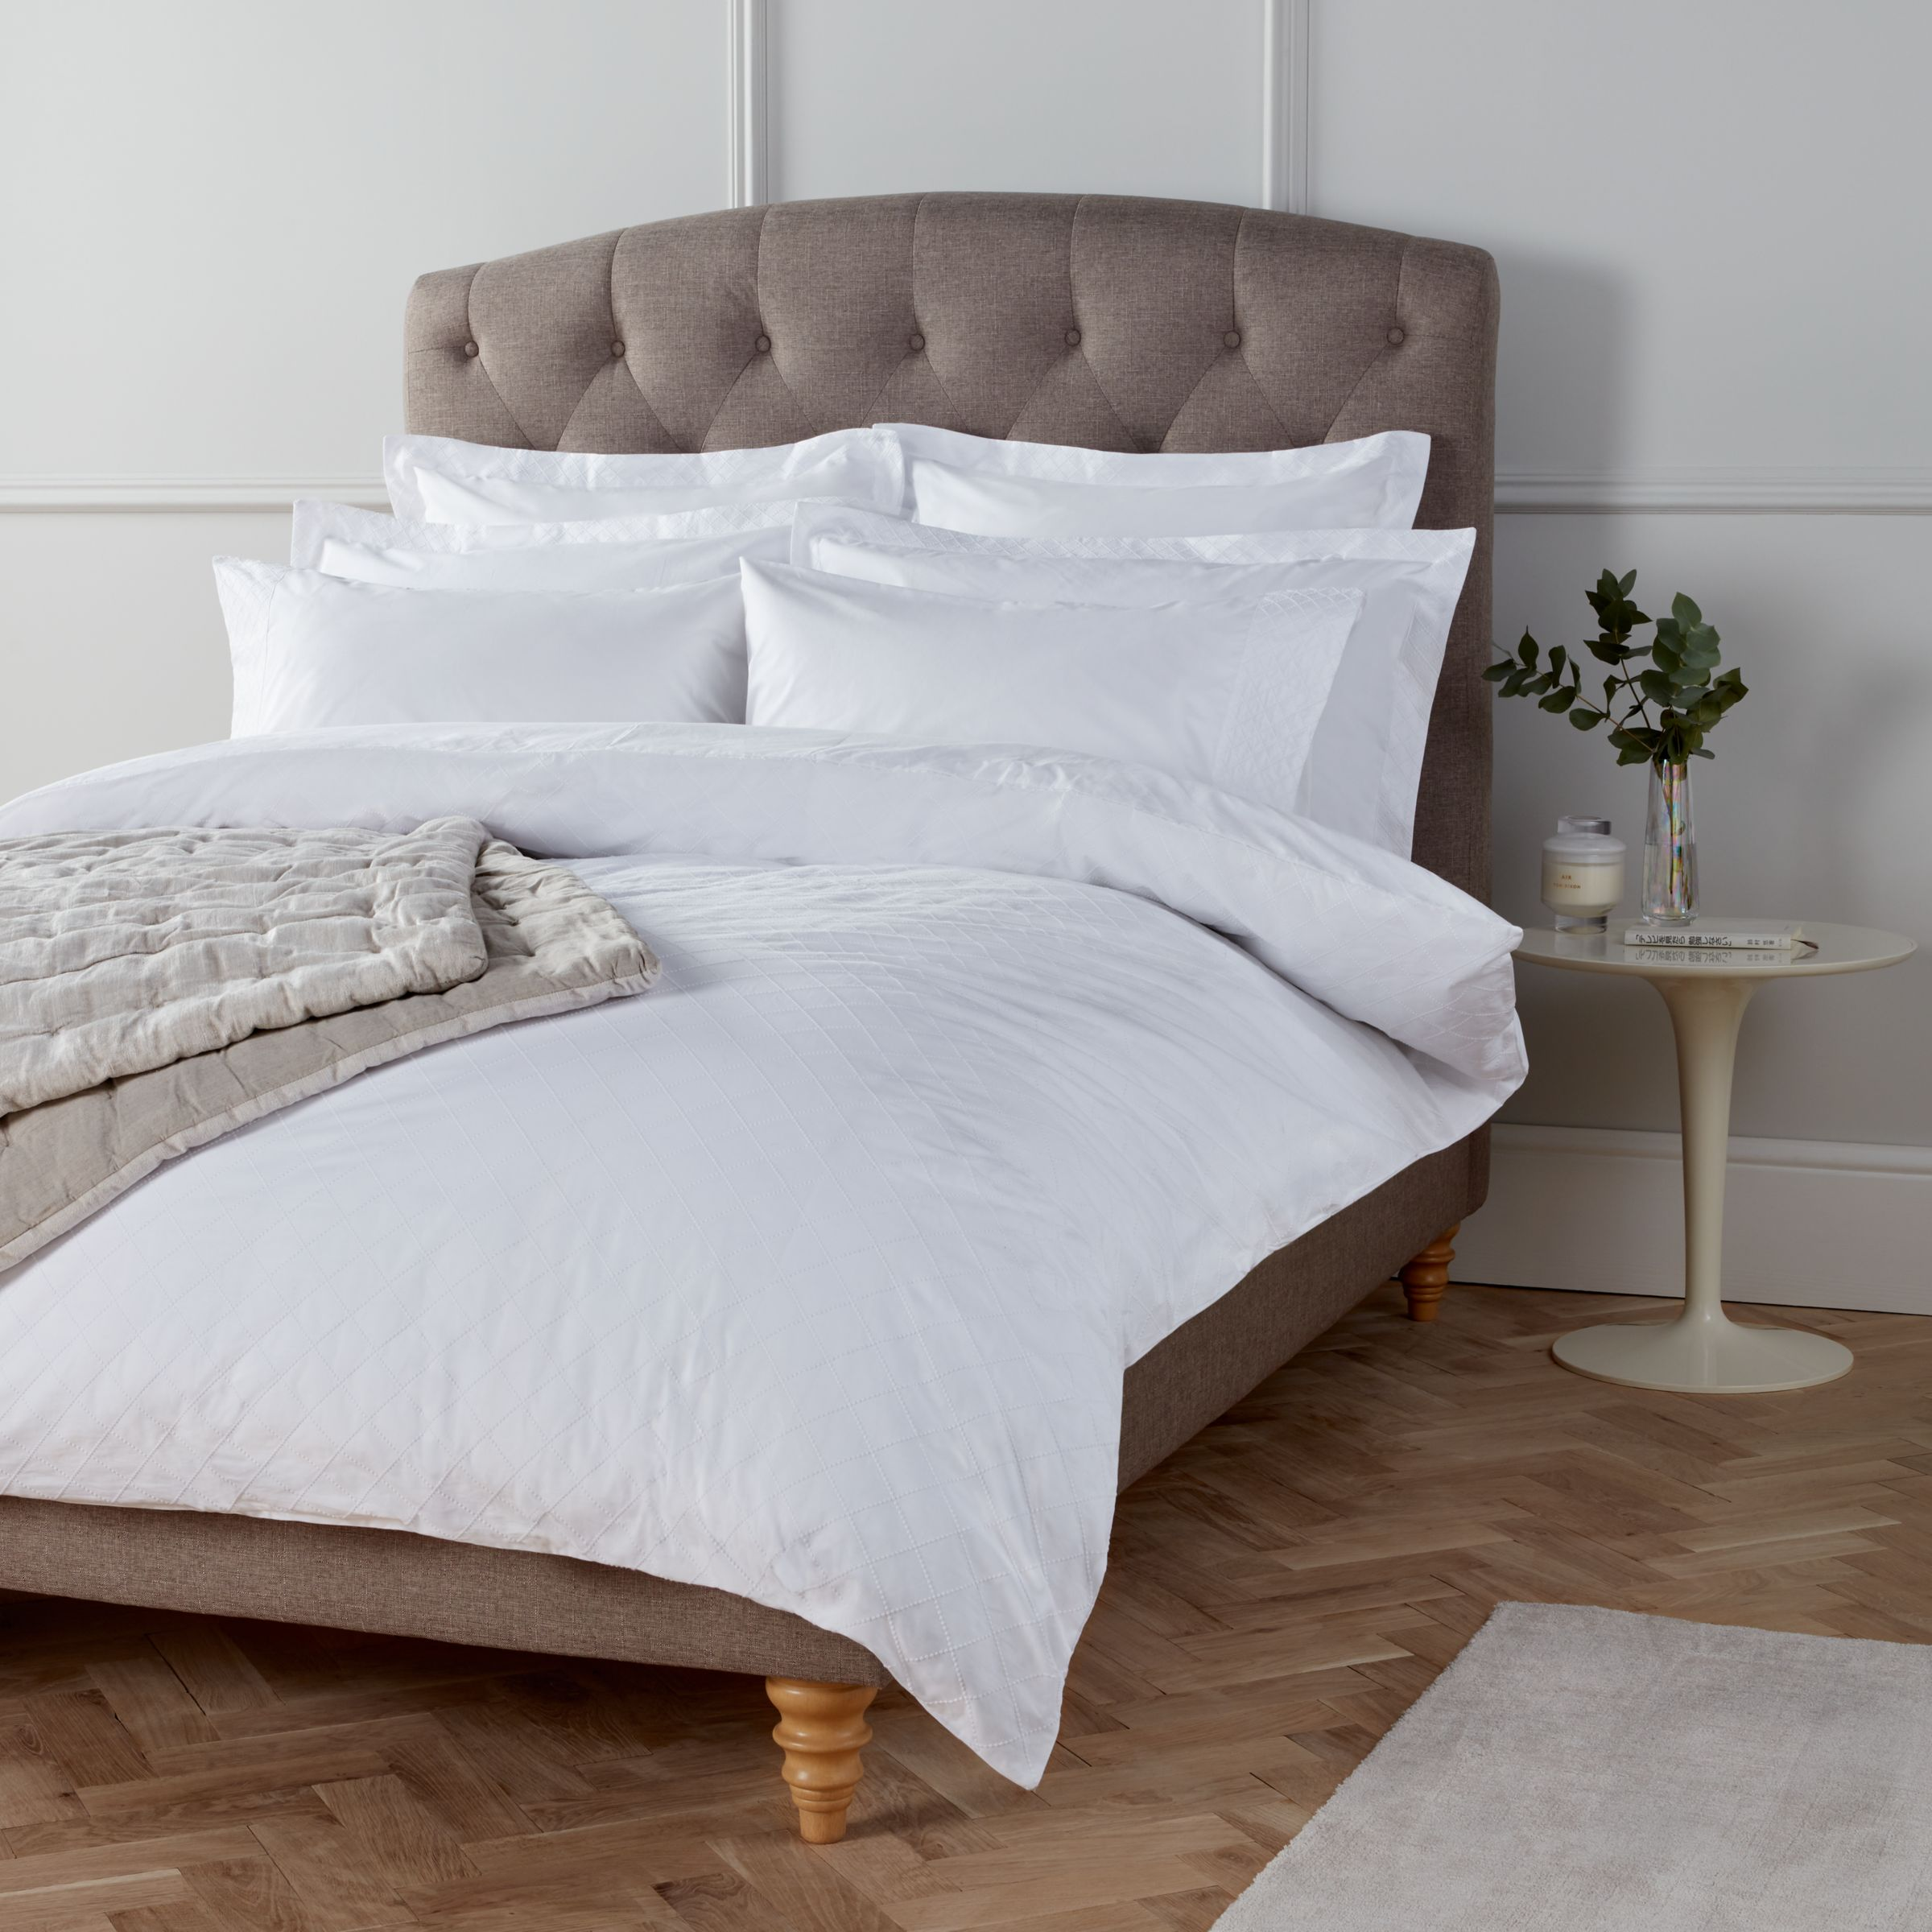 John Lewis Partners Crisp And Fresh Lattice Embroidered Bedding White At John Lewis Partners